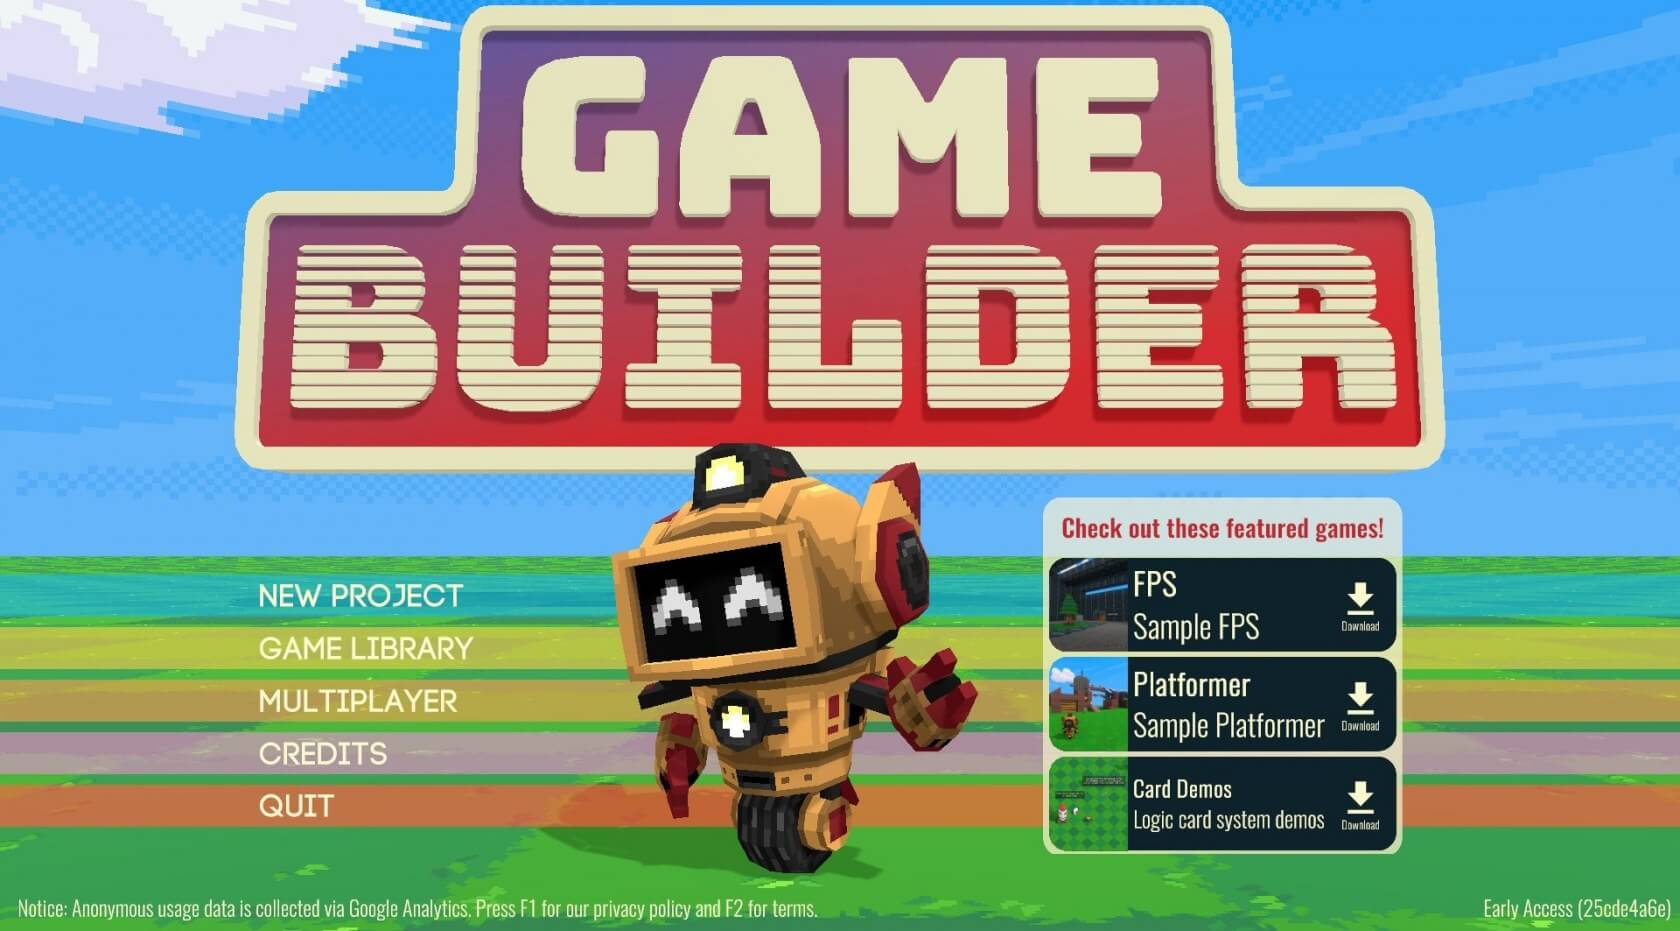 You Can Build Games Without Programming With Google Game Builder